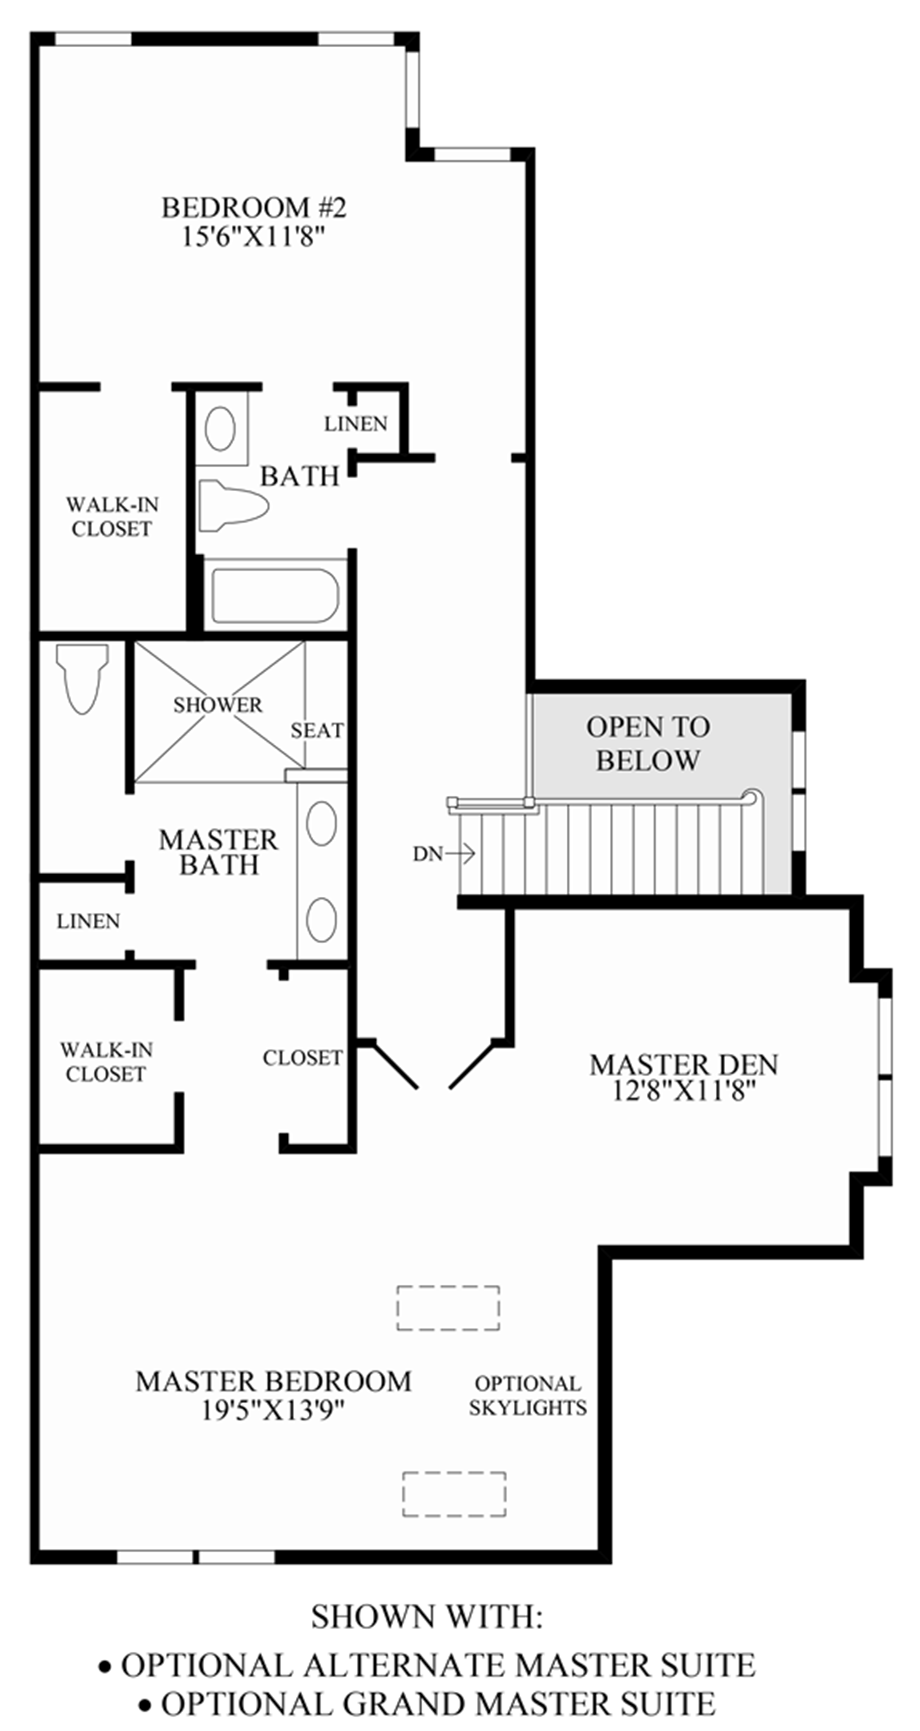 Optional Alternate Master Suite & Grand Master Suite Floor Plan